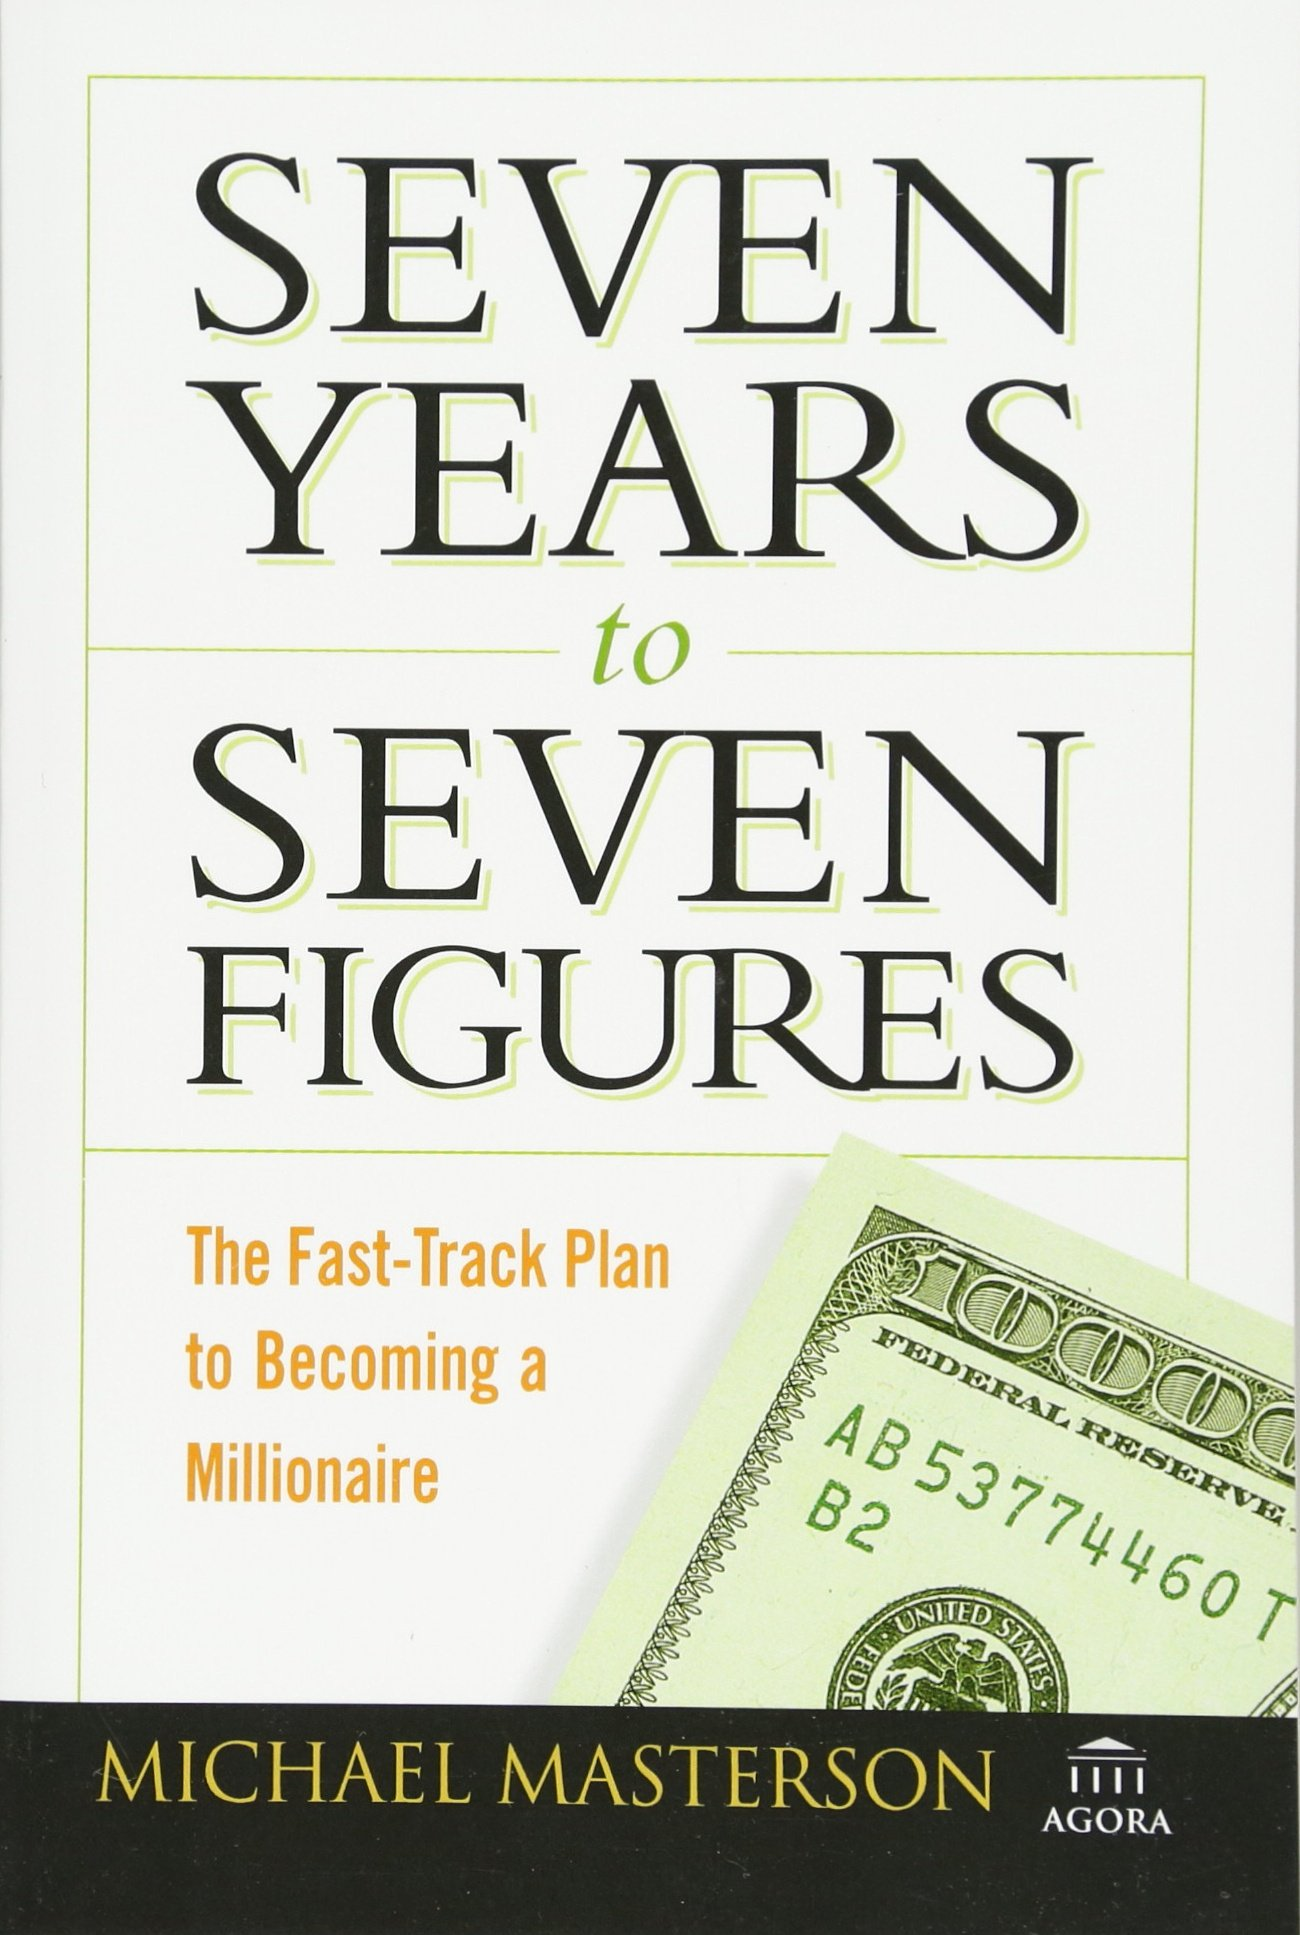 michael masterson seven years to seven figures ext